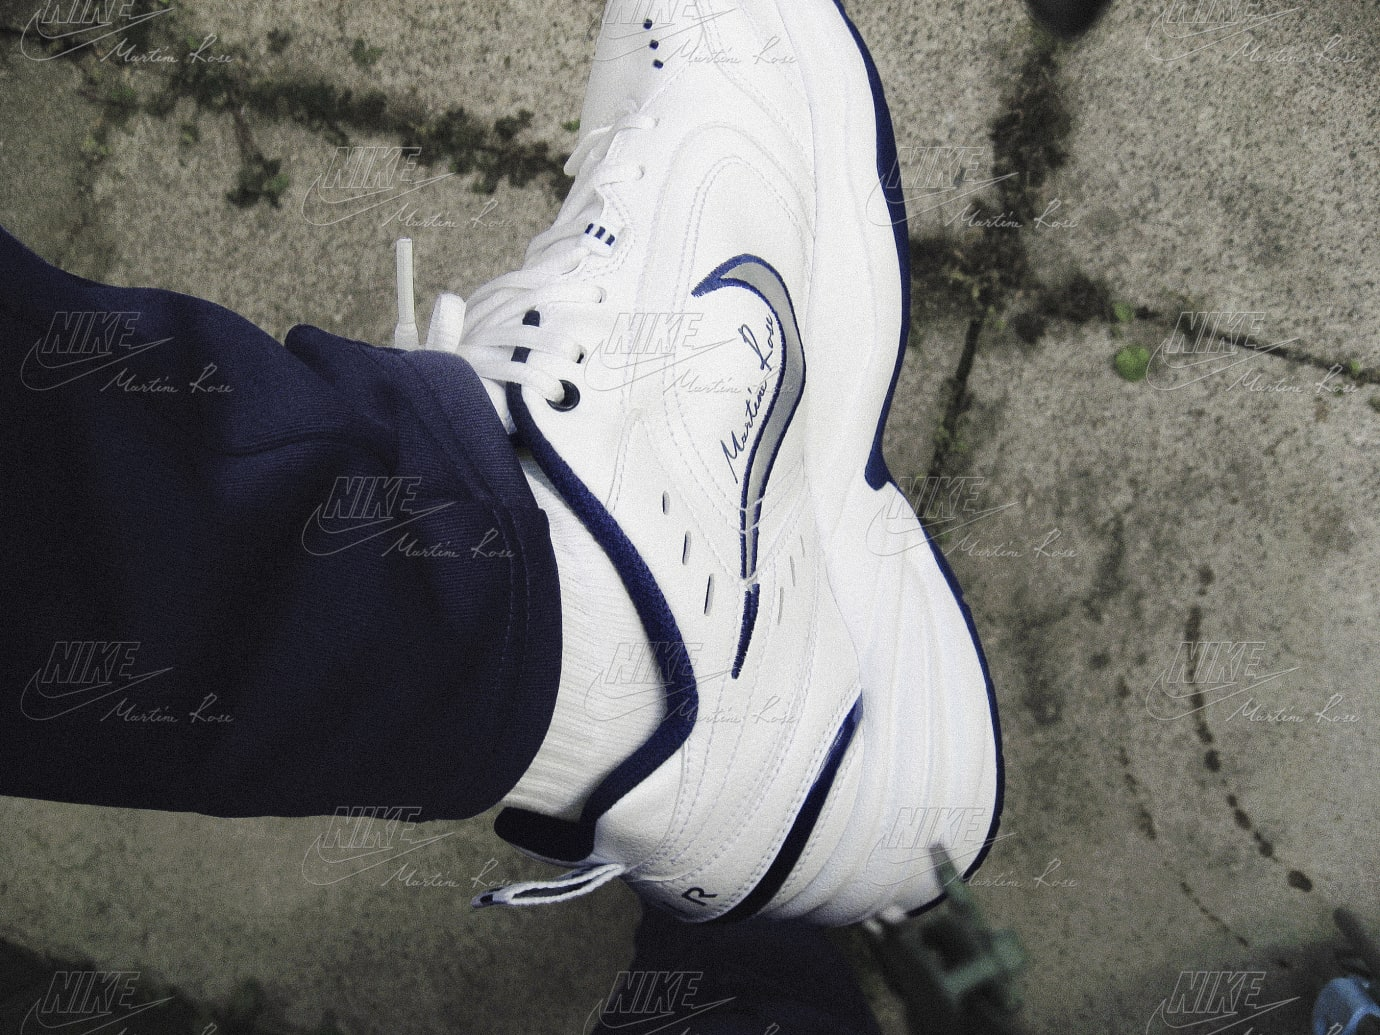 Martine Rose x Nike Air Monarch Collection 2